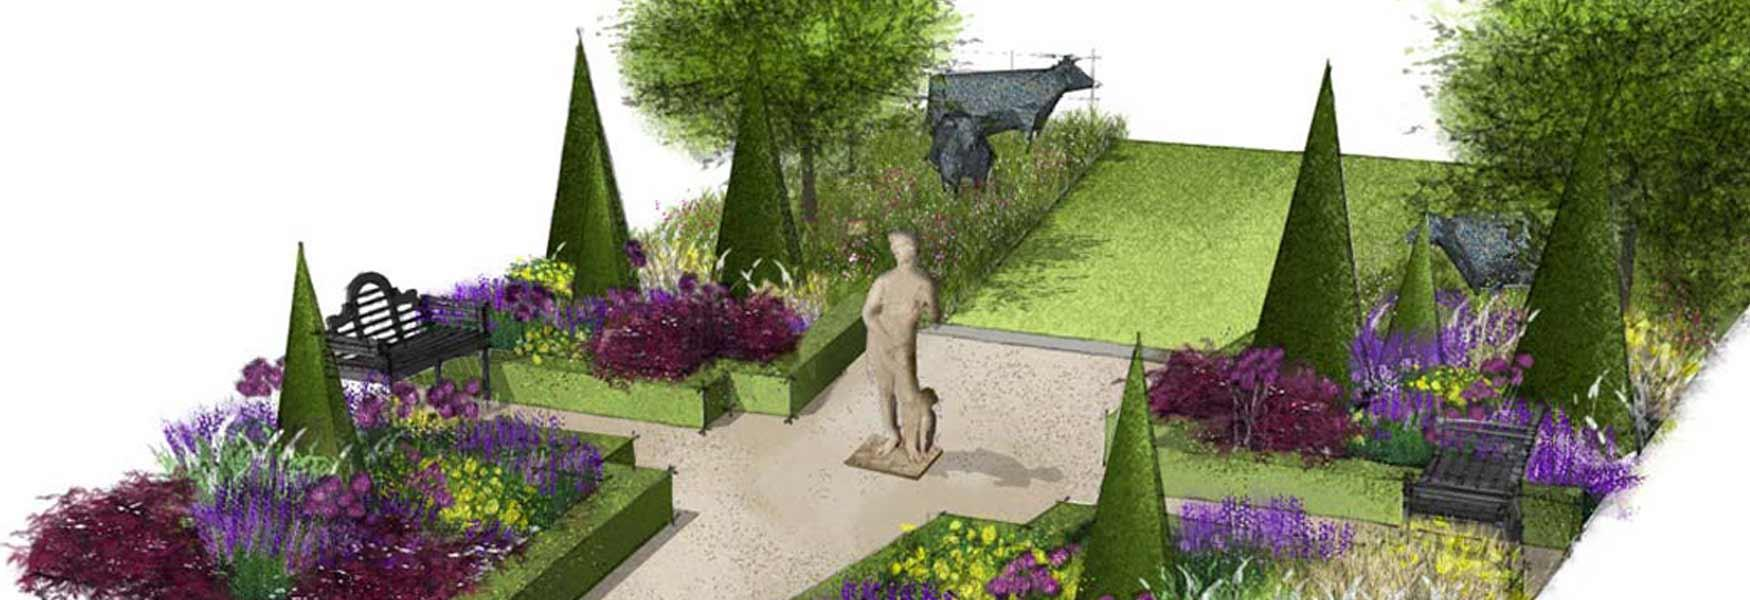 Experience Peak District & Derbyshire Show Garden at RHS Chatsworth